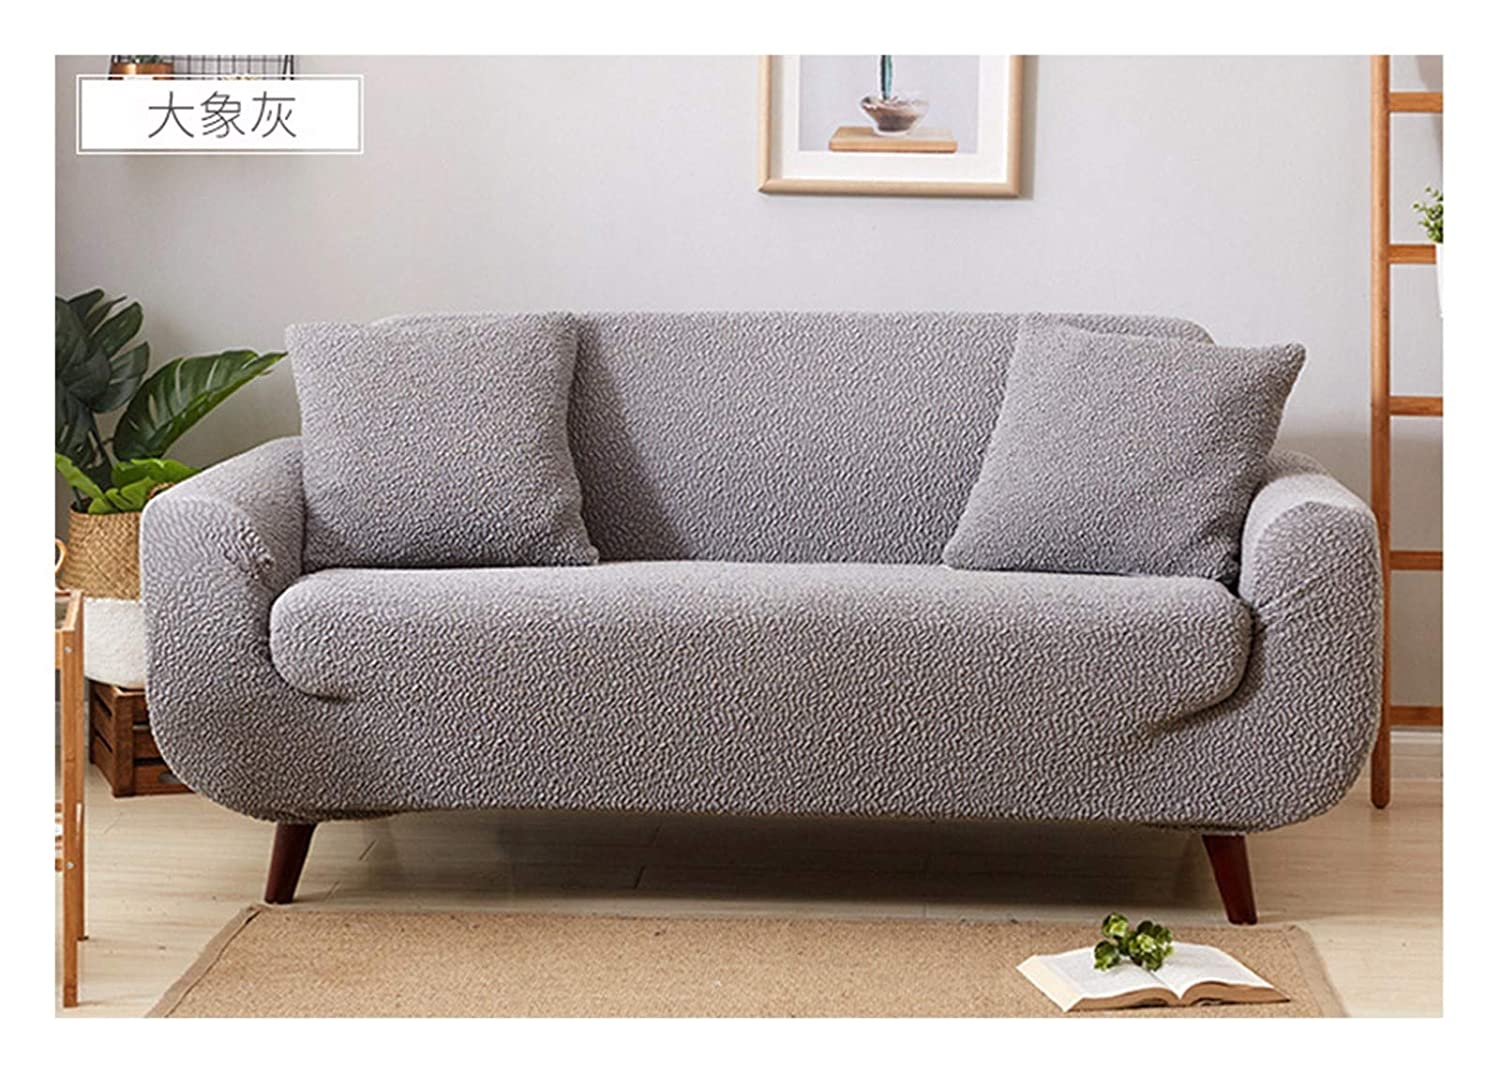 4seat VGUYFUYH Grey Thickening Fold Sofa Cover Polyester Full Package Elasticity Home Universal Sofa Cover Simple Fashion One Piece Durable Dust-Proof Pet Dog Predective Cover,4Seat